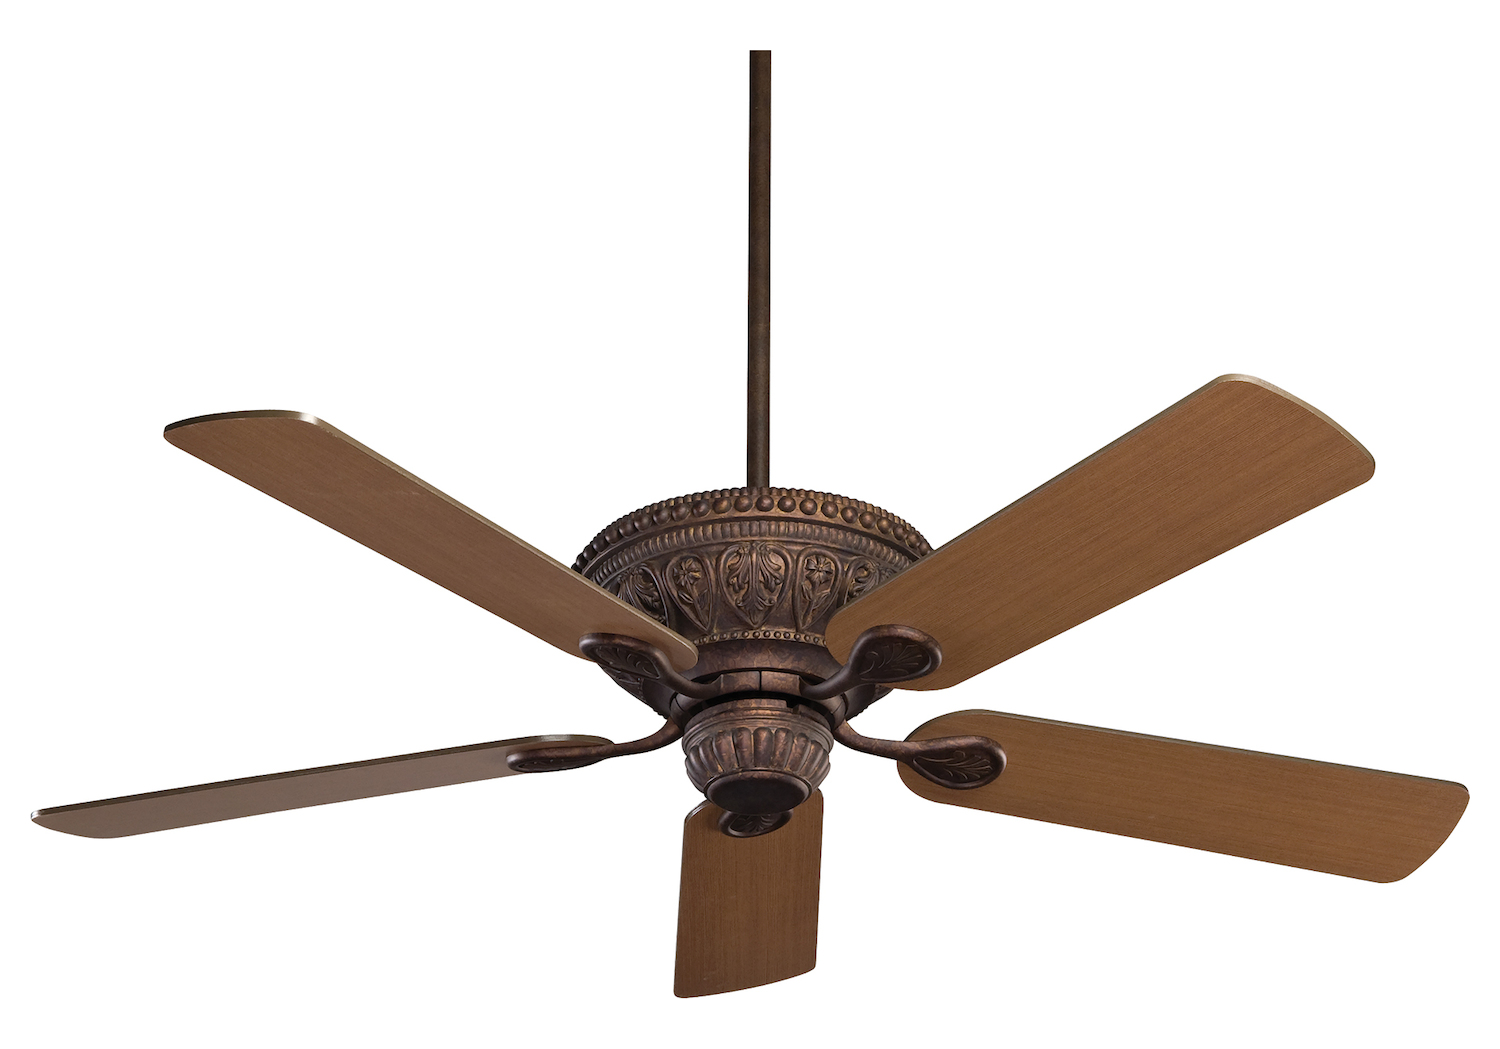 Savoy House New Tortoise Shell Ceiling Fan Brown 52 850